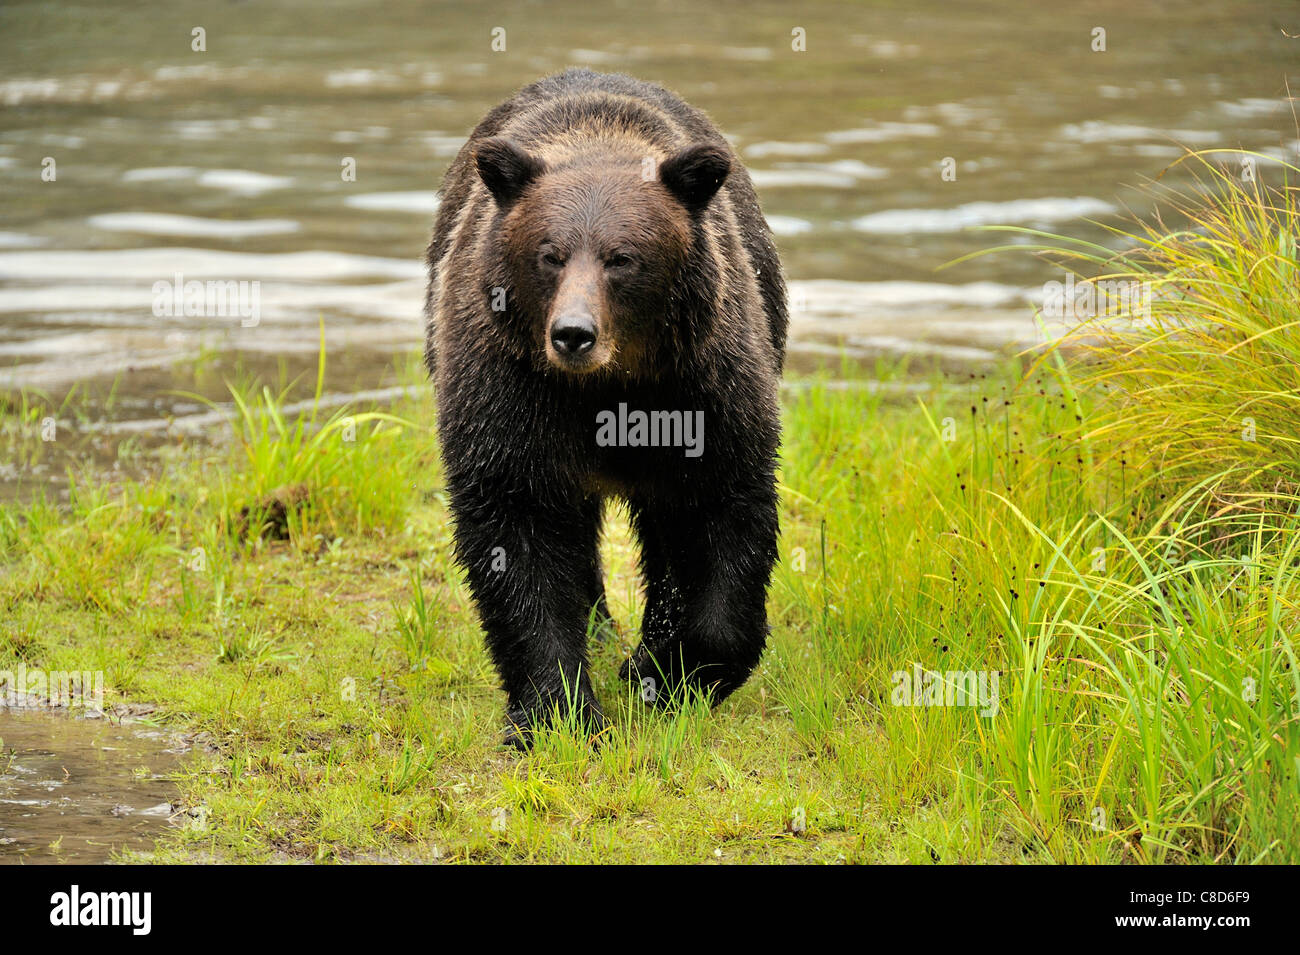 An adult grizzly bear walking along the edge of a water pond. - Stock Image